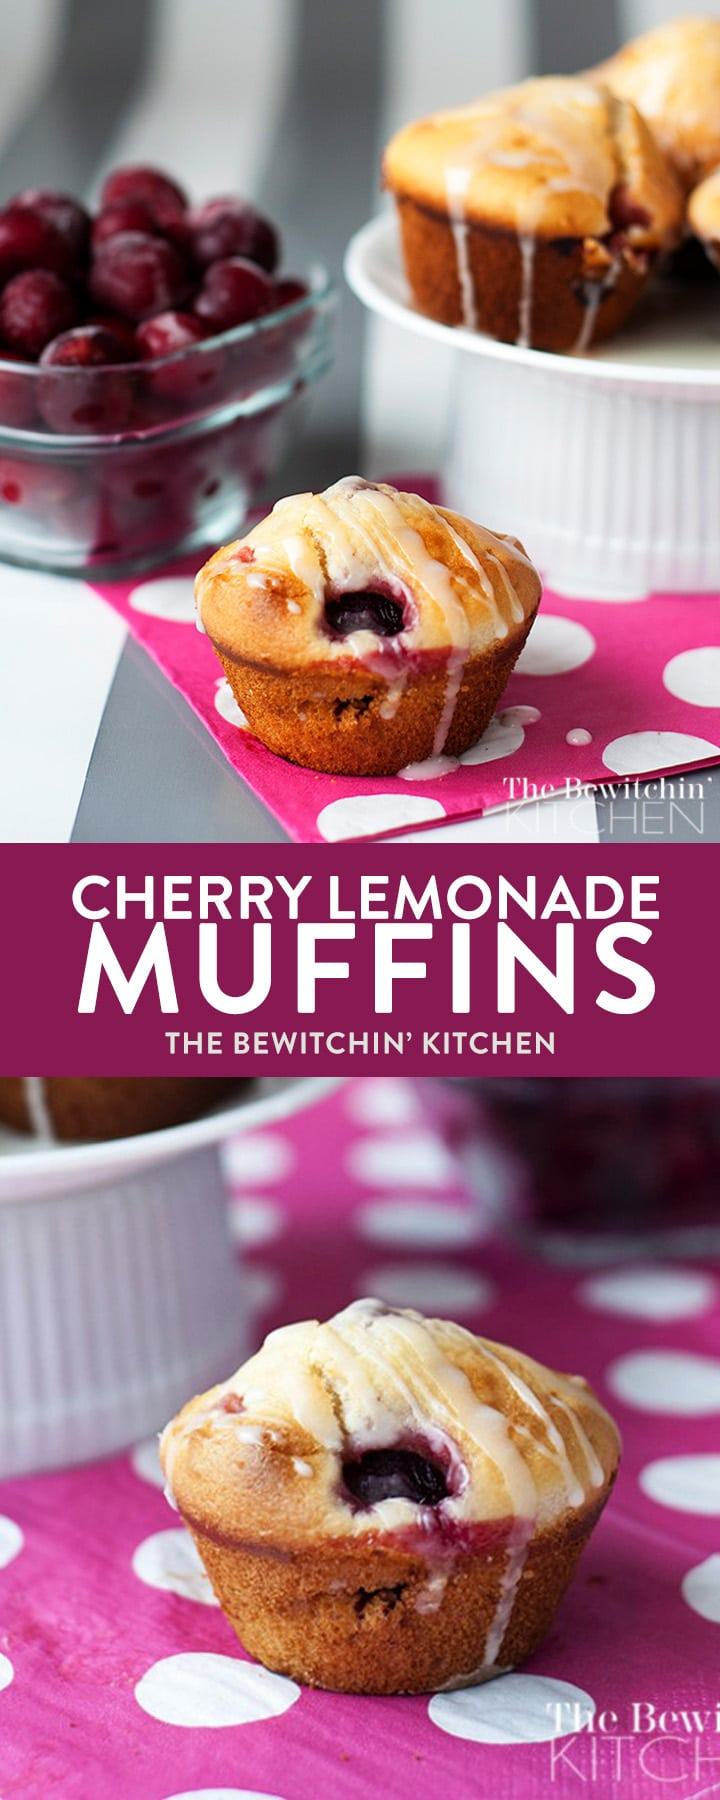 Cherry Lemonade Muffins recipe - a yummy cherry muffin topped with a lemon glaze. If you're looking for a different style of cherry recipes this is it! Makes one heck of a dessert or snack.